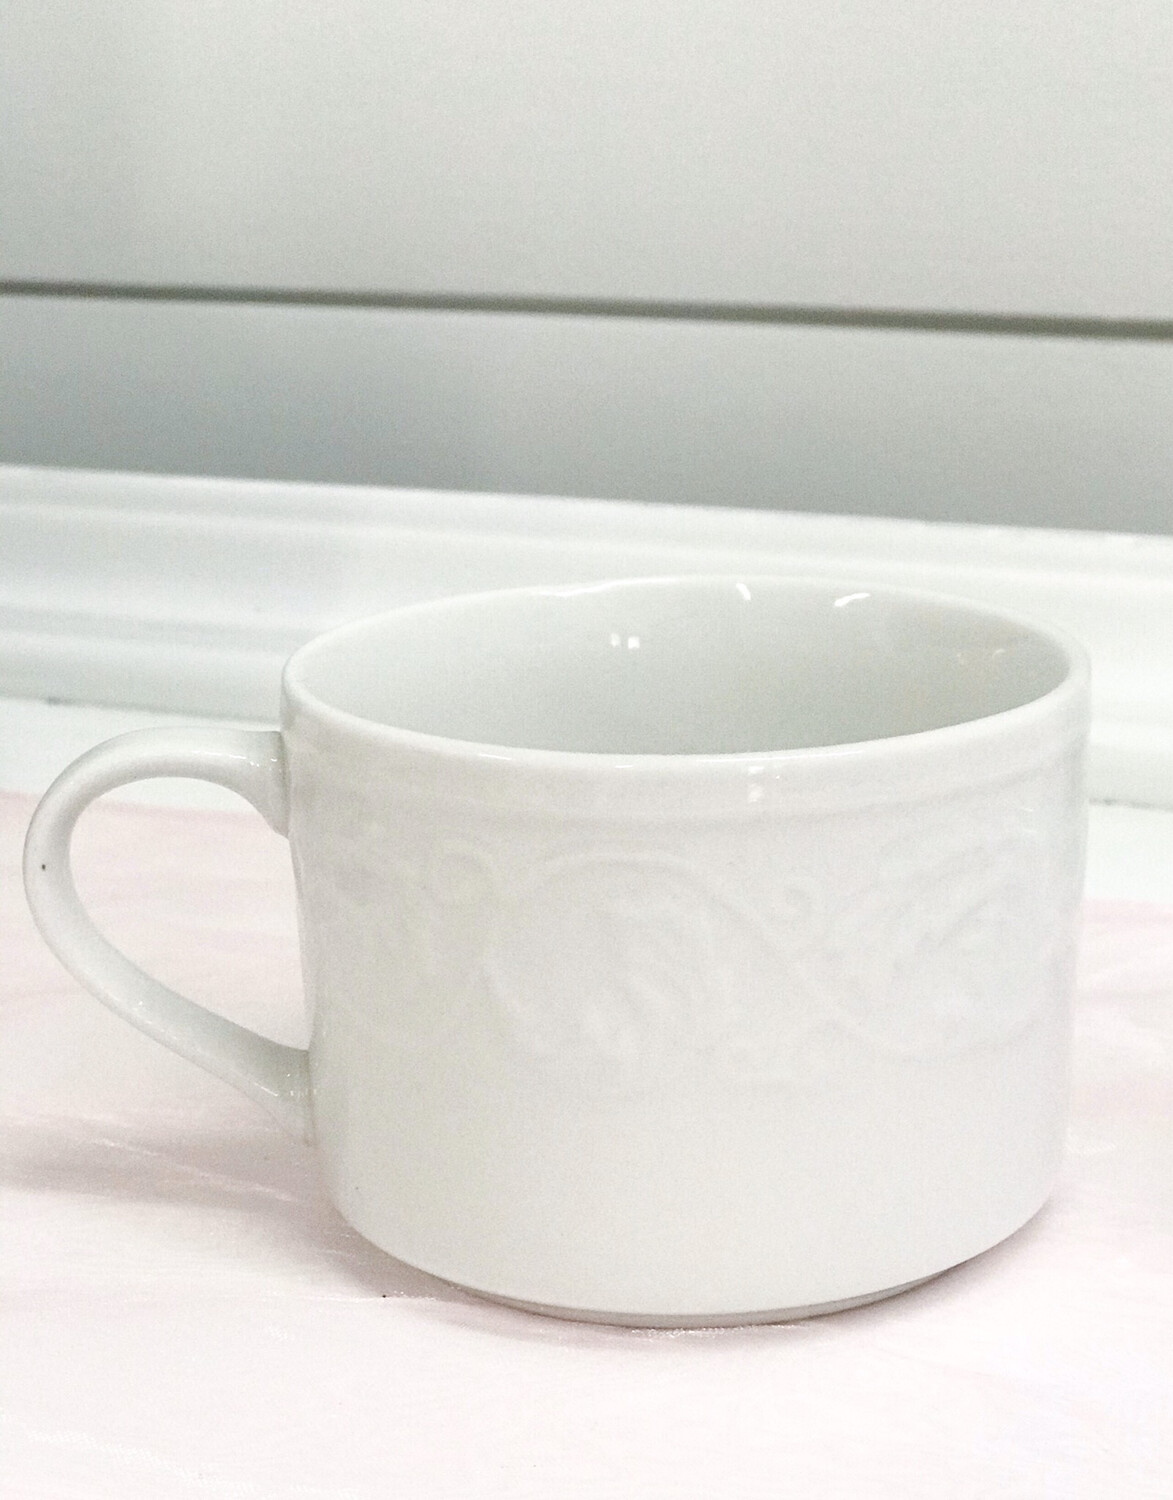 Short White Coffee Cup with Design